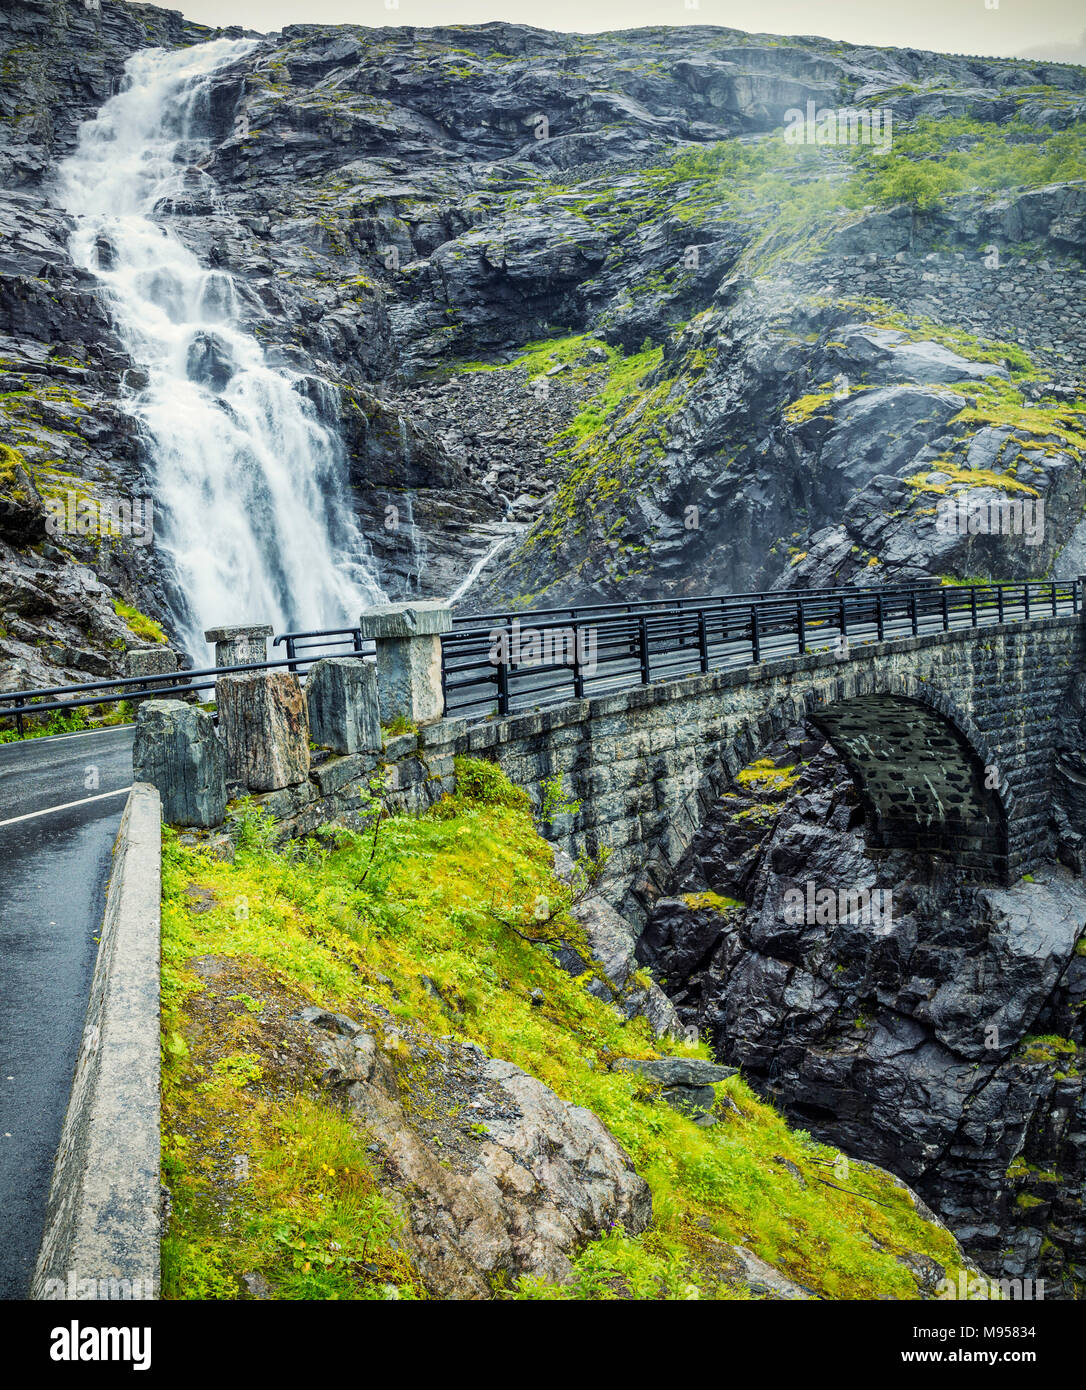 View On Bridge and Waterfall In Troll Road, Norway - Stock Image